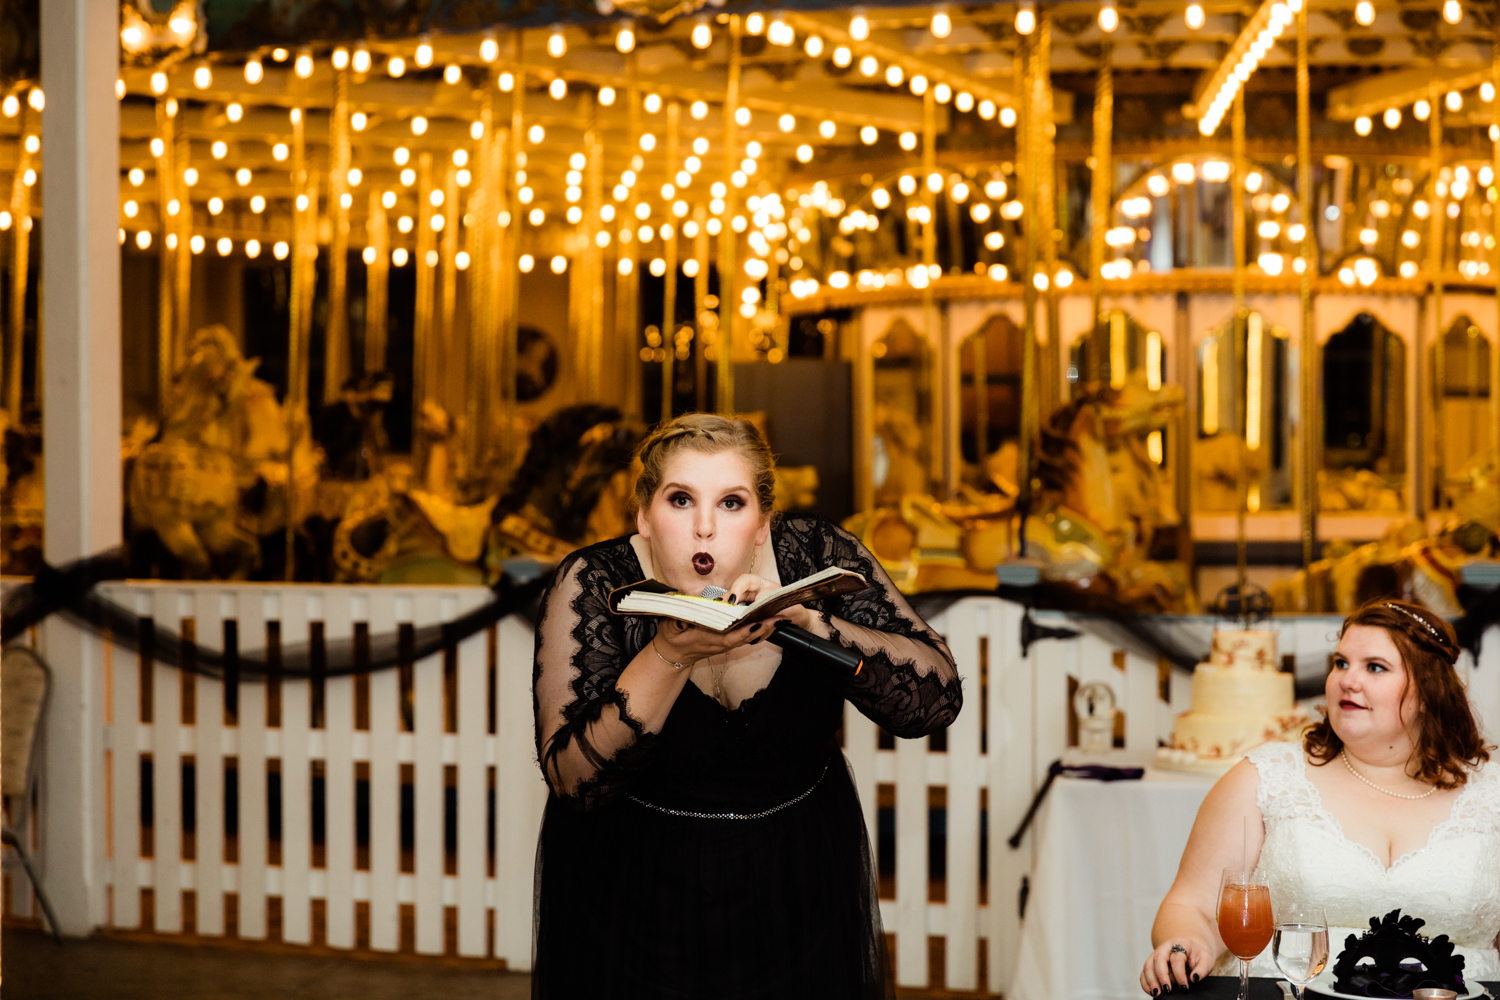 Maid of honor blowing on book for wedding day speech